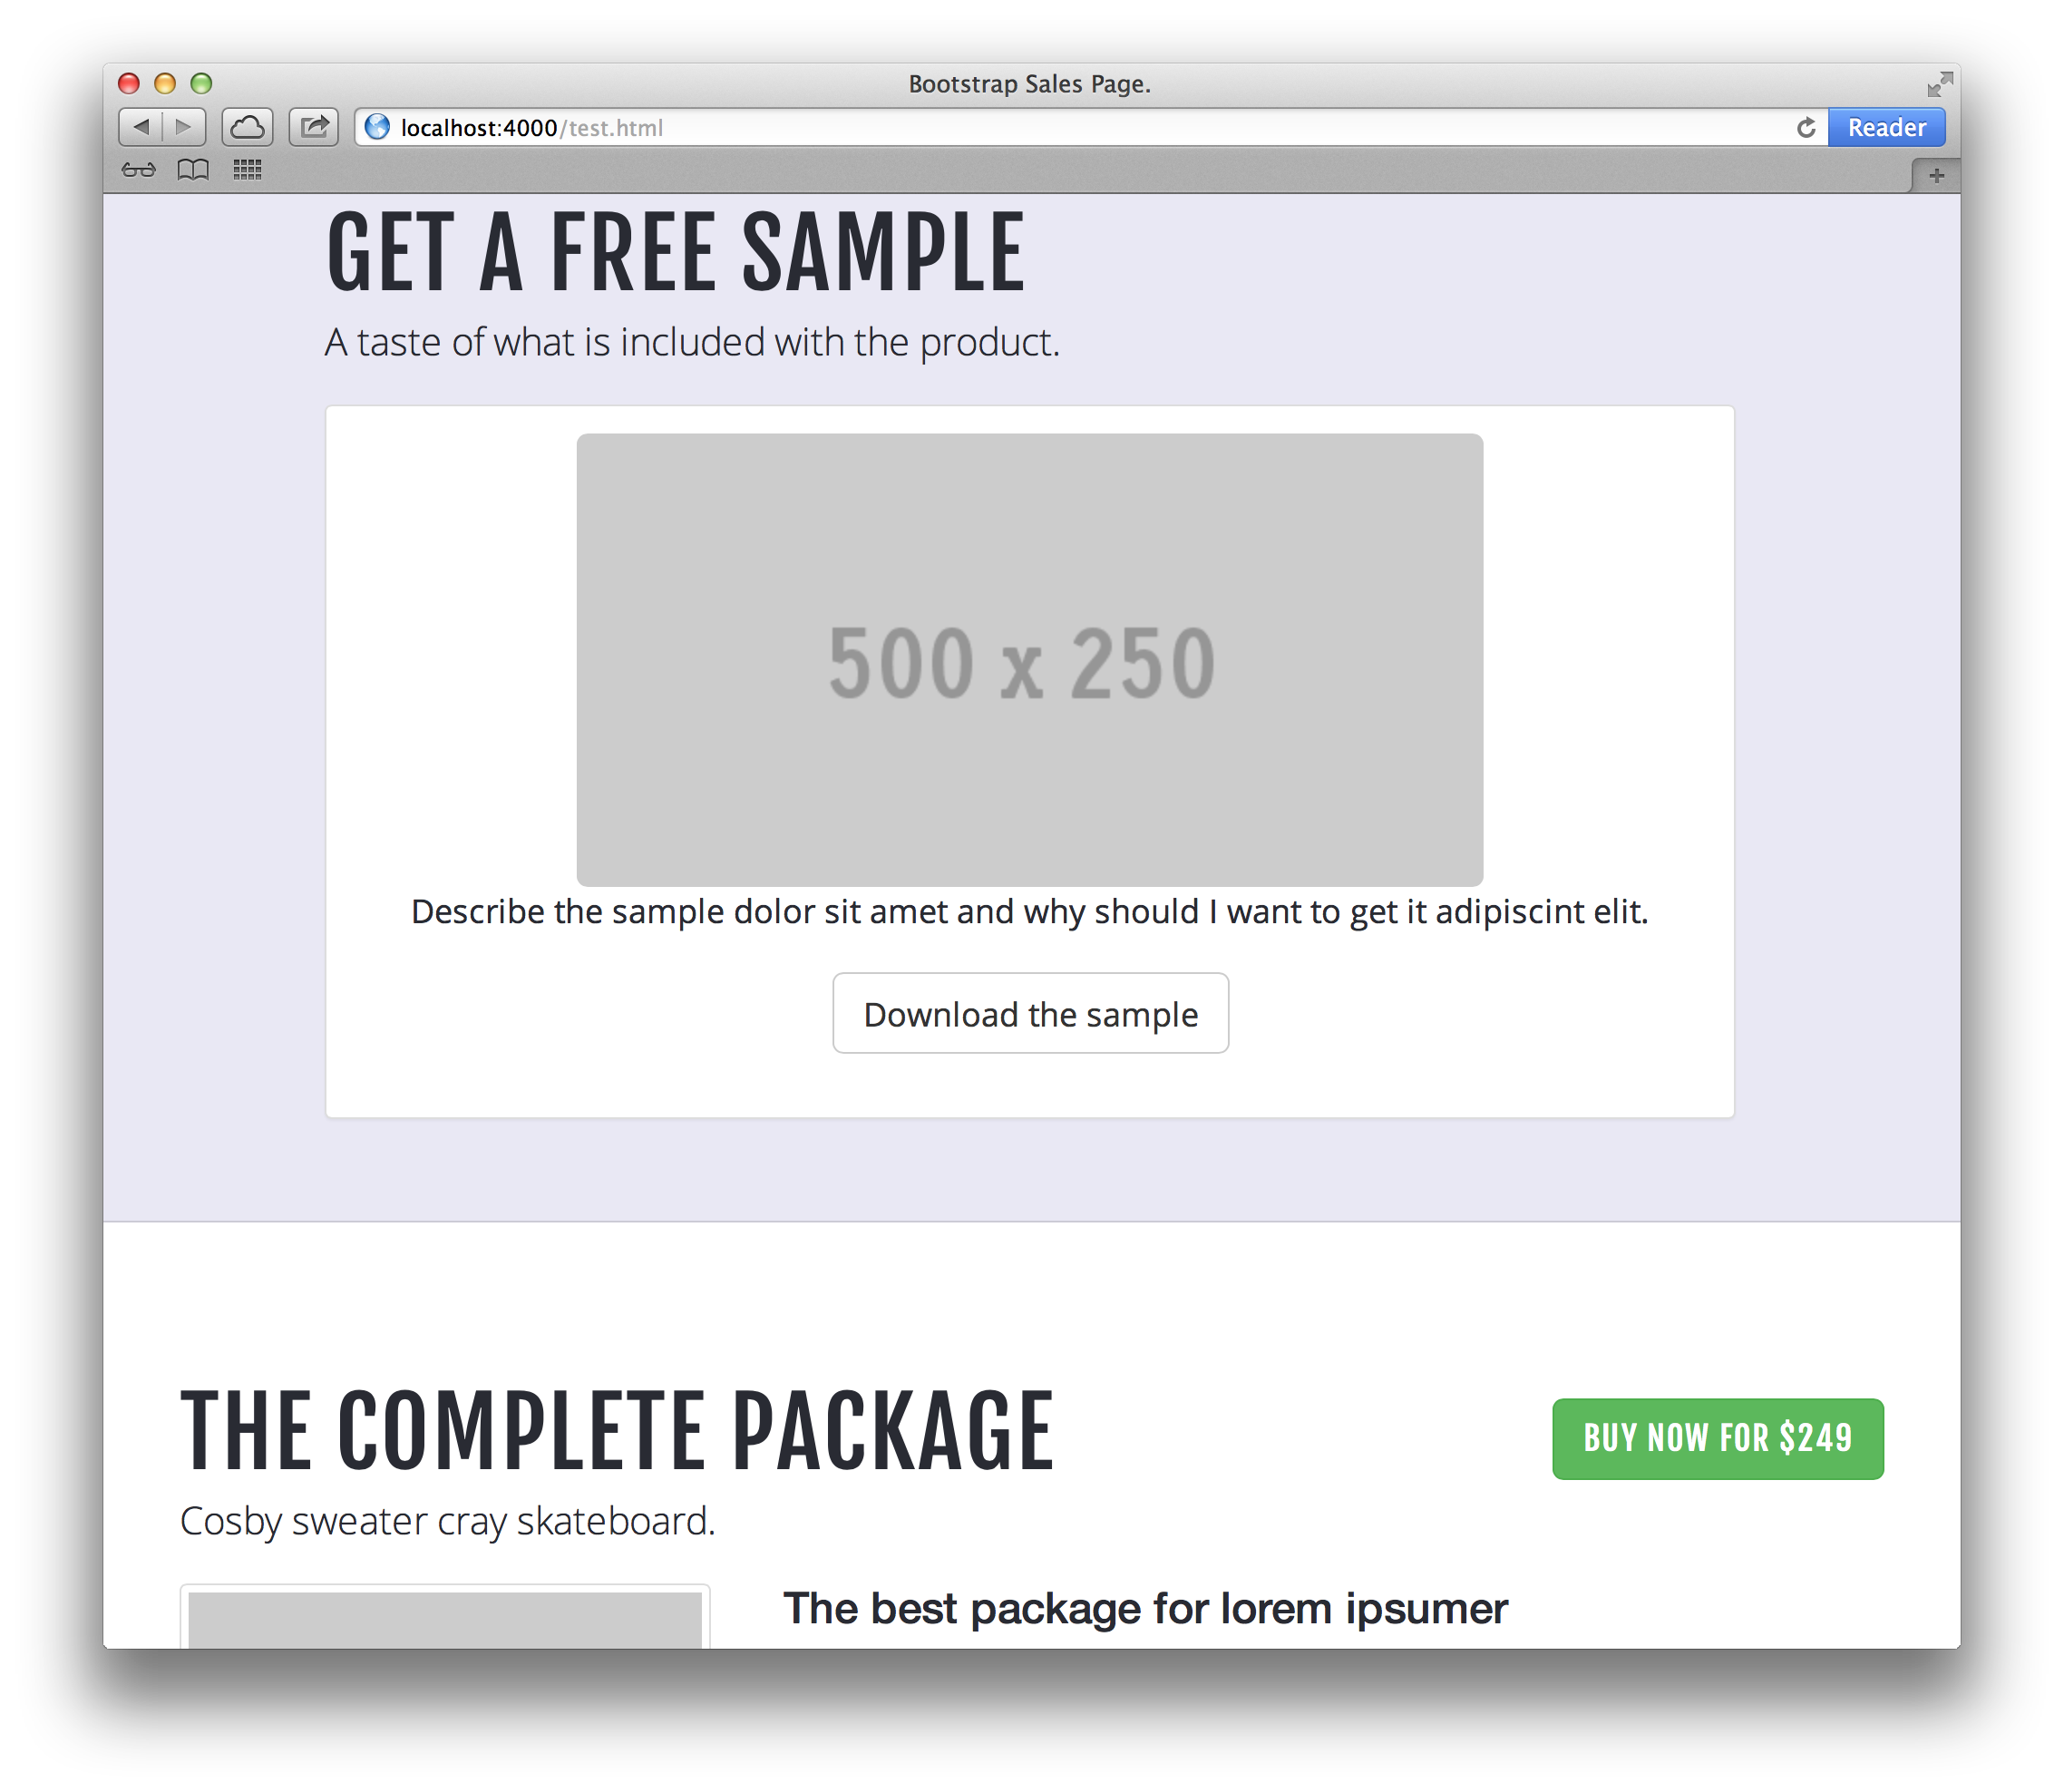 Bootstrap Sales Page Example 3